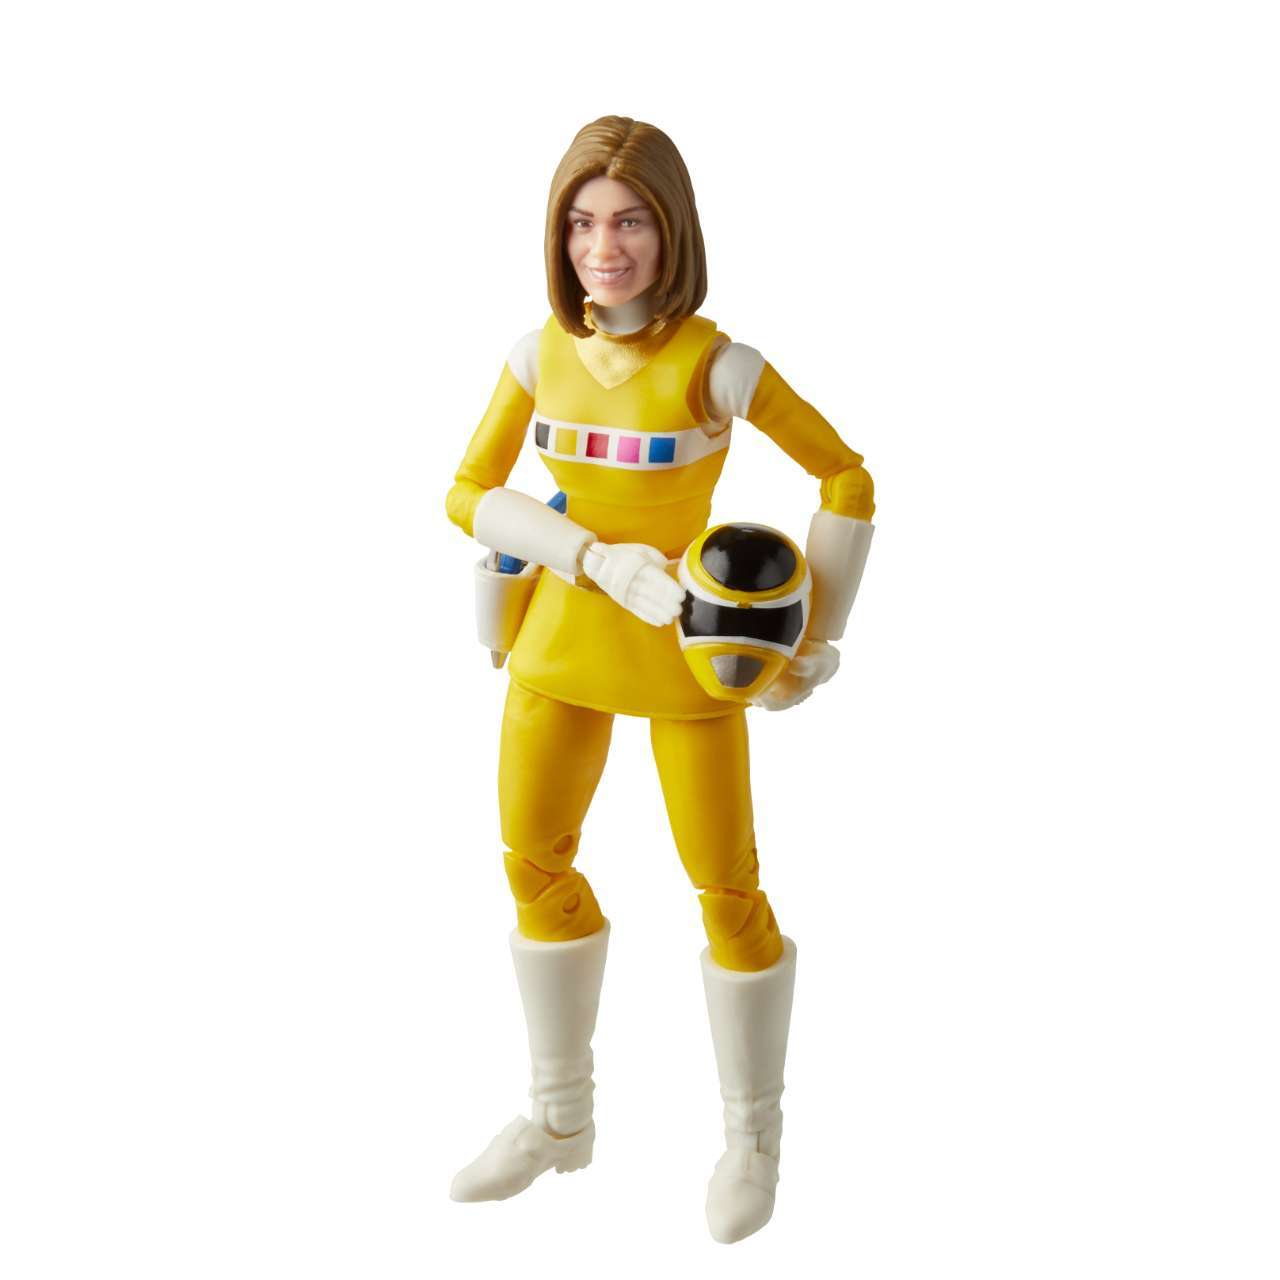 E8663_PROD_PRG_In_Space_Yellow_Ranger_059